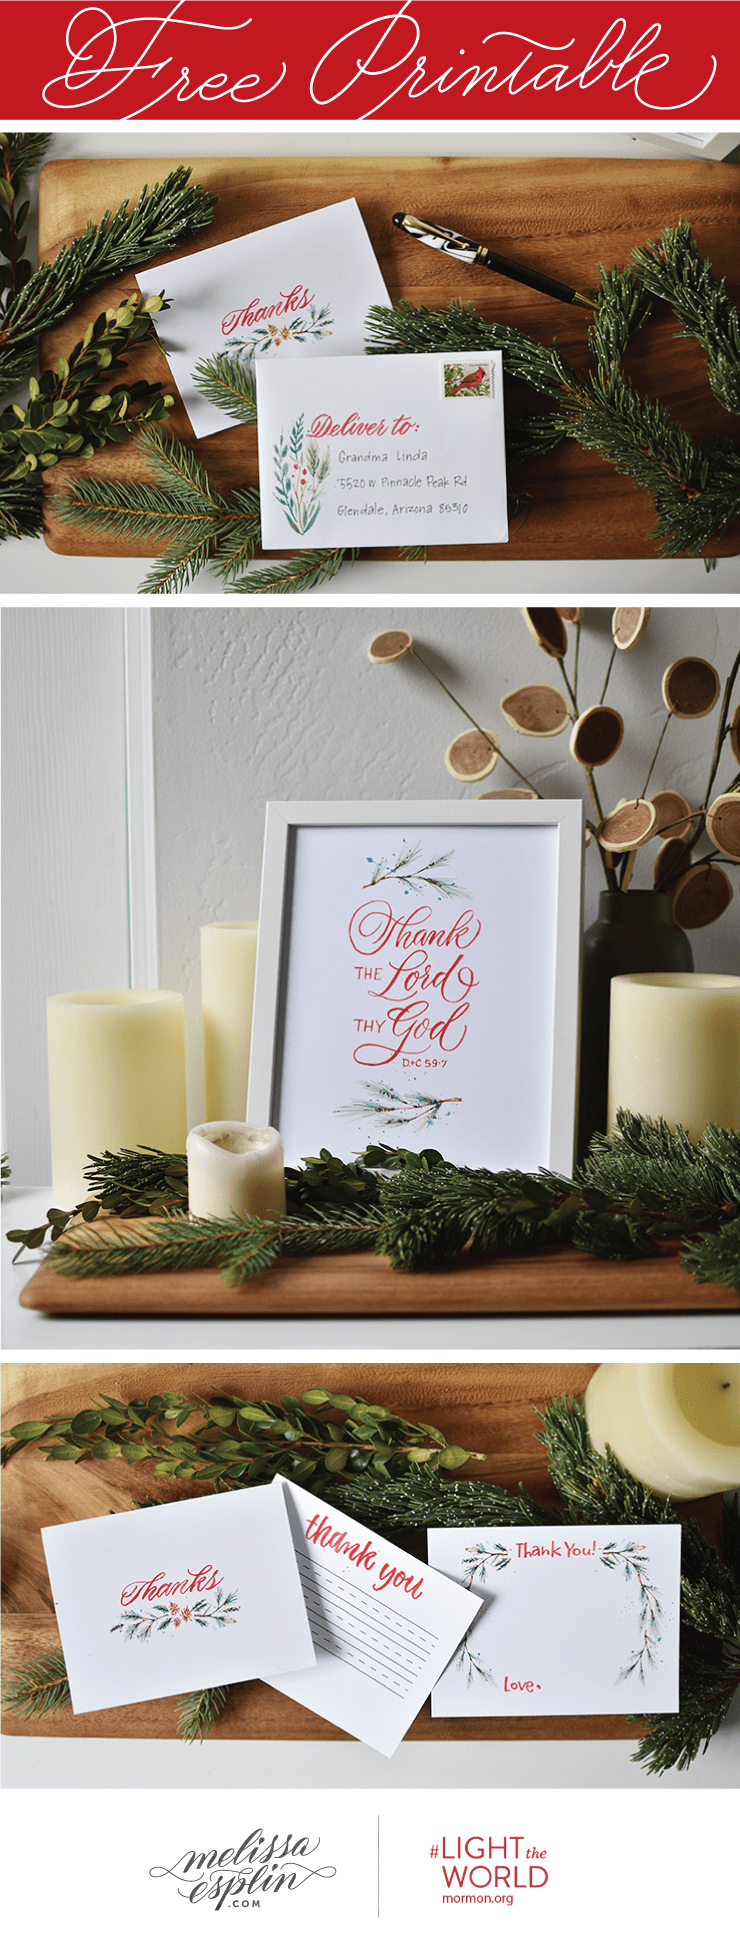 Free thank you cards, envelope, and Thank the Lord print from Melissa Esplin. #LIGHTtheWORLD